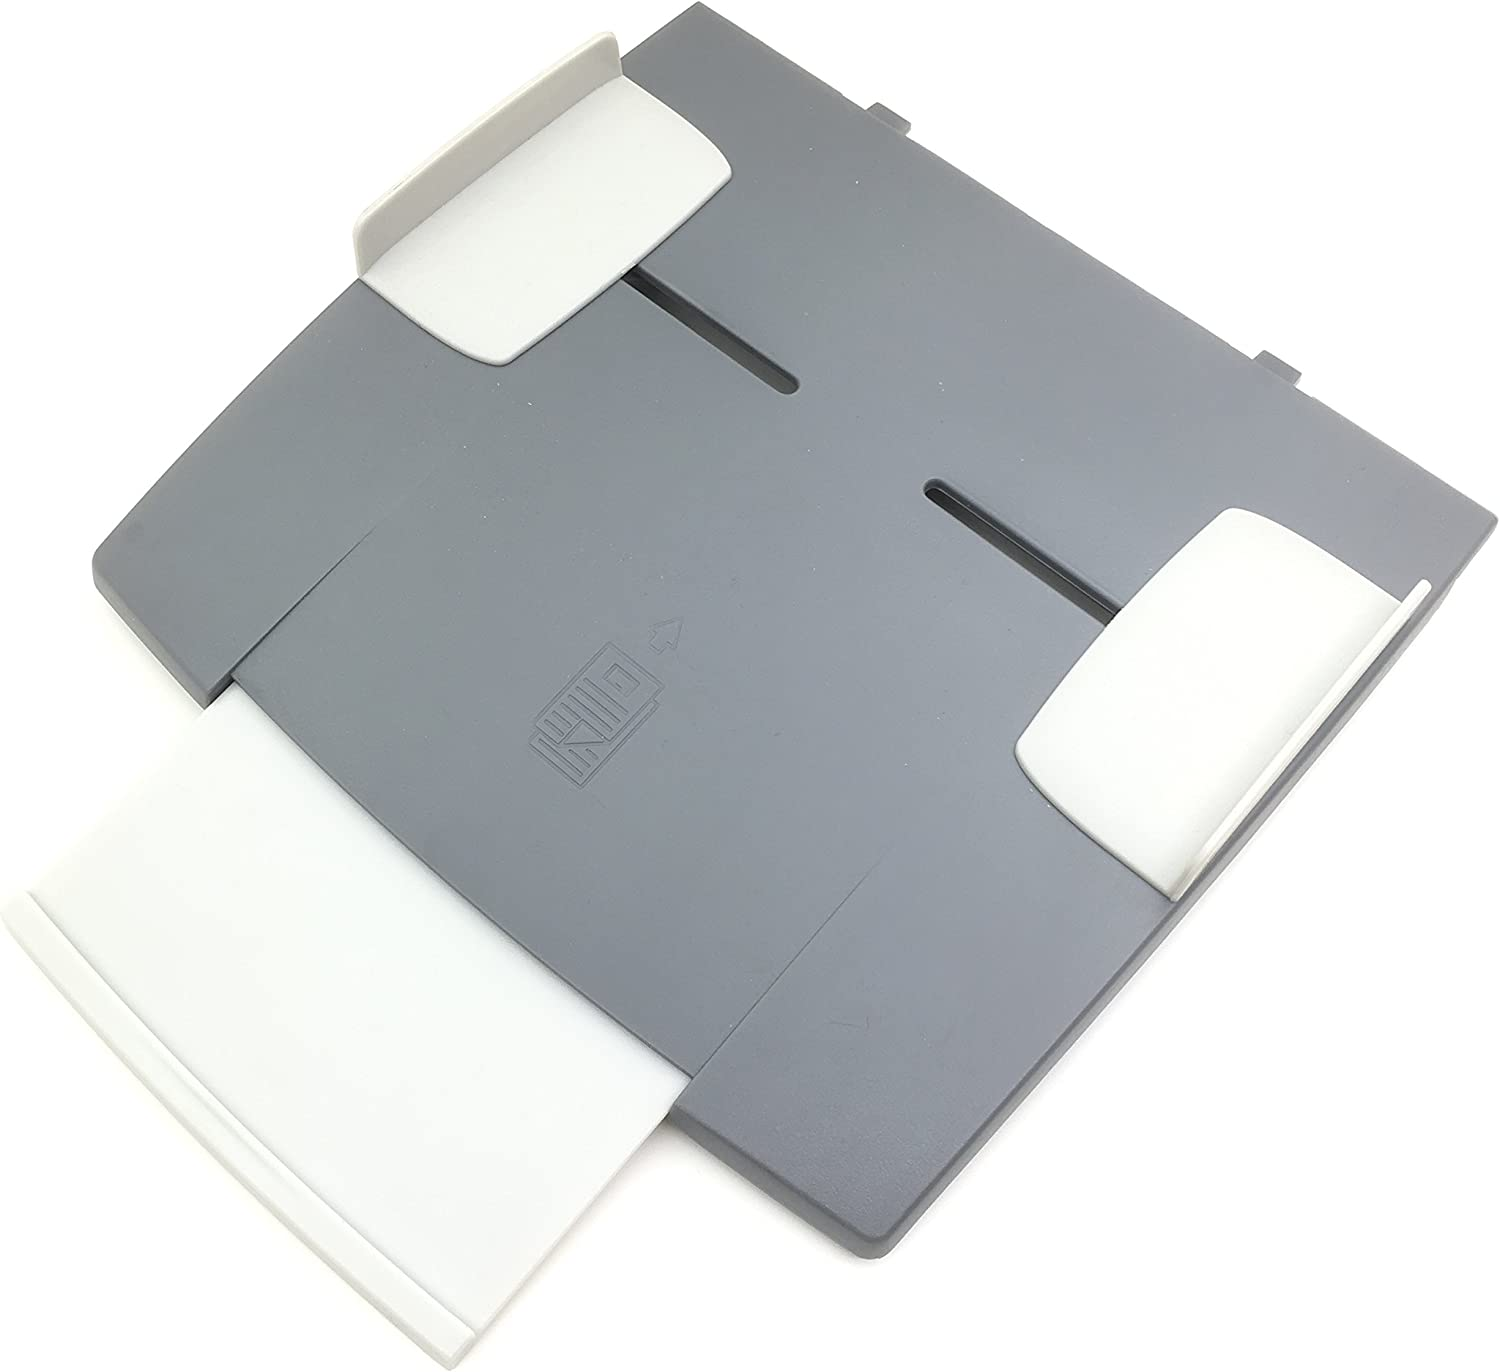 OKLILI Dark Gray Q6500-60119 Q3948-60214 CB534-60112 Q1636-40012 Q2665-60109 ADF Paper Input Tray Compatible with HP 1522 M1522 CM1312 CM2320 3390 3392 M2727 2820 2840 3050 3052 3055